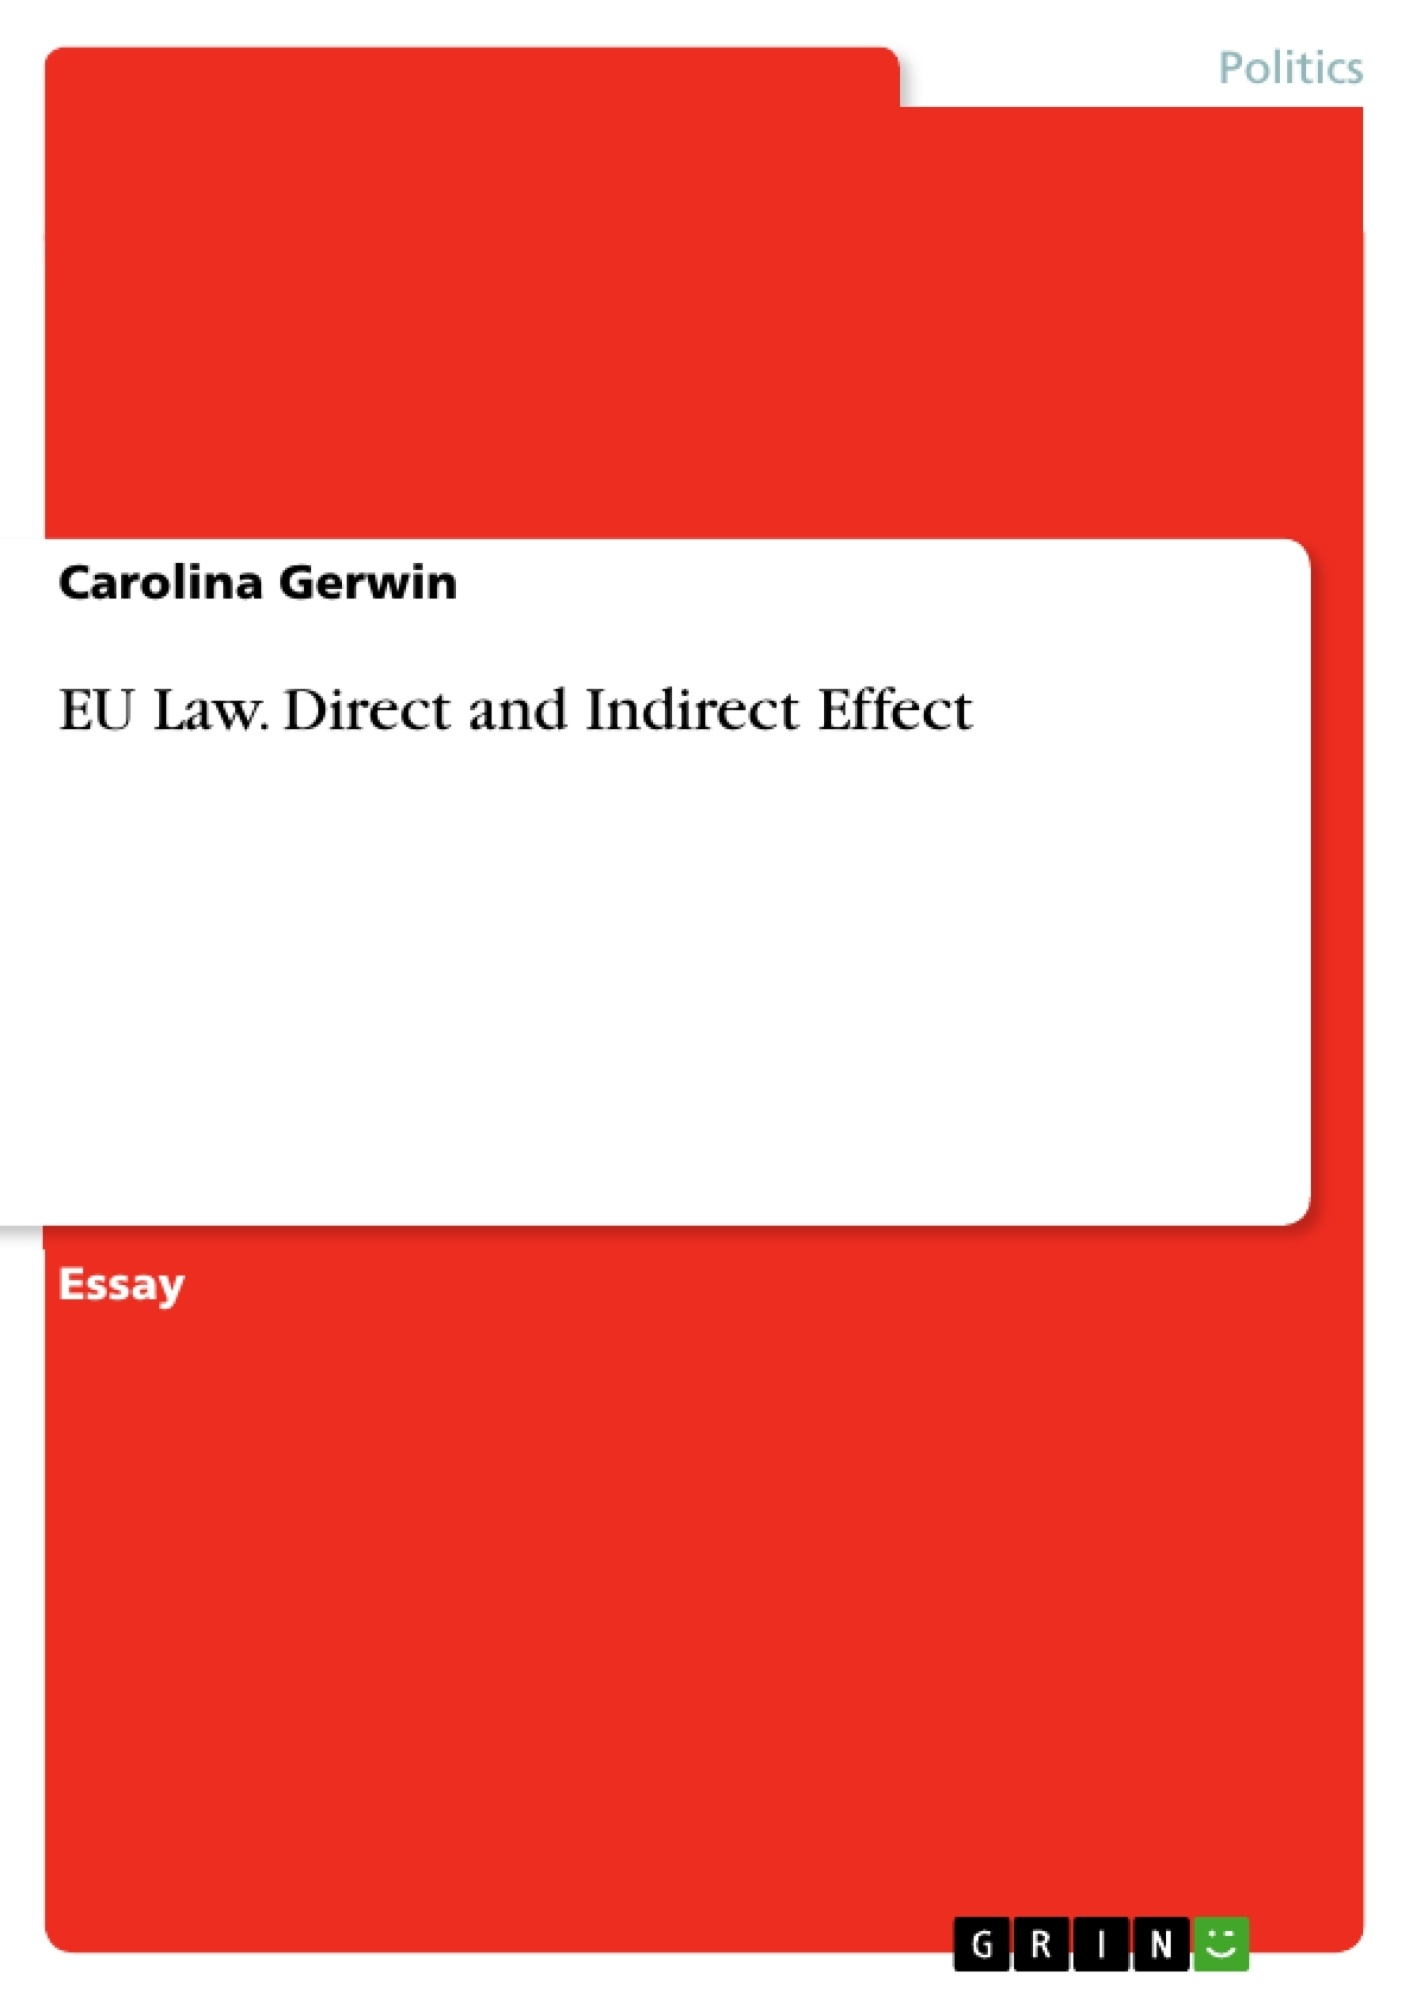 Title: EU Law. Direct and Indirect Effect